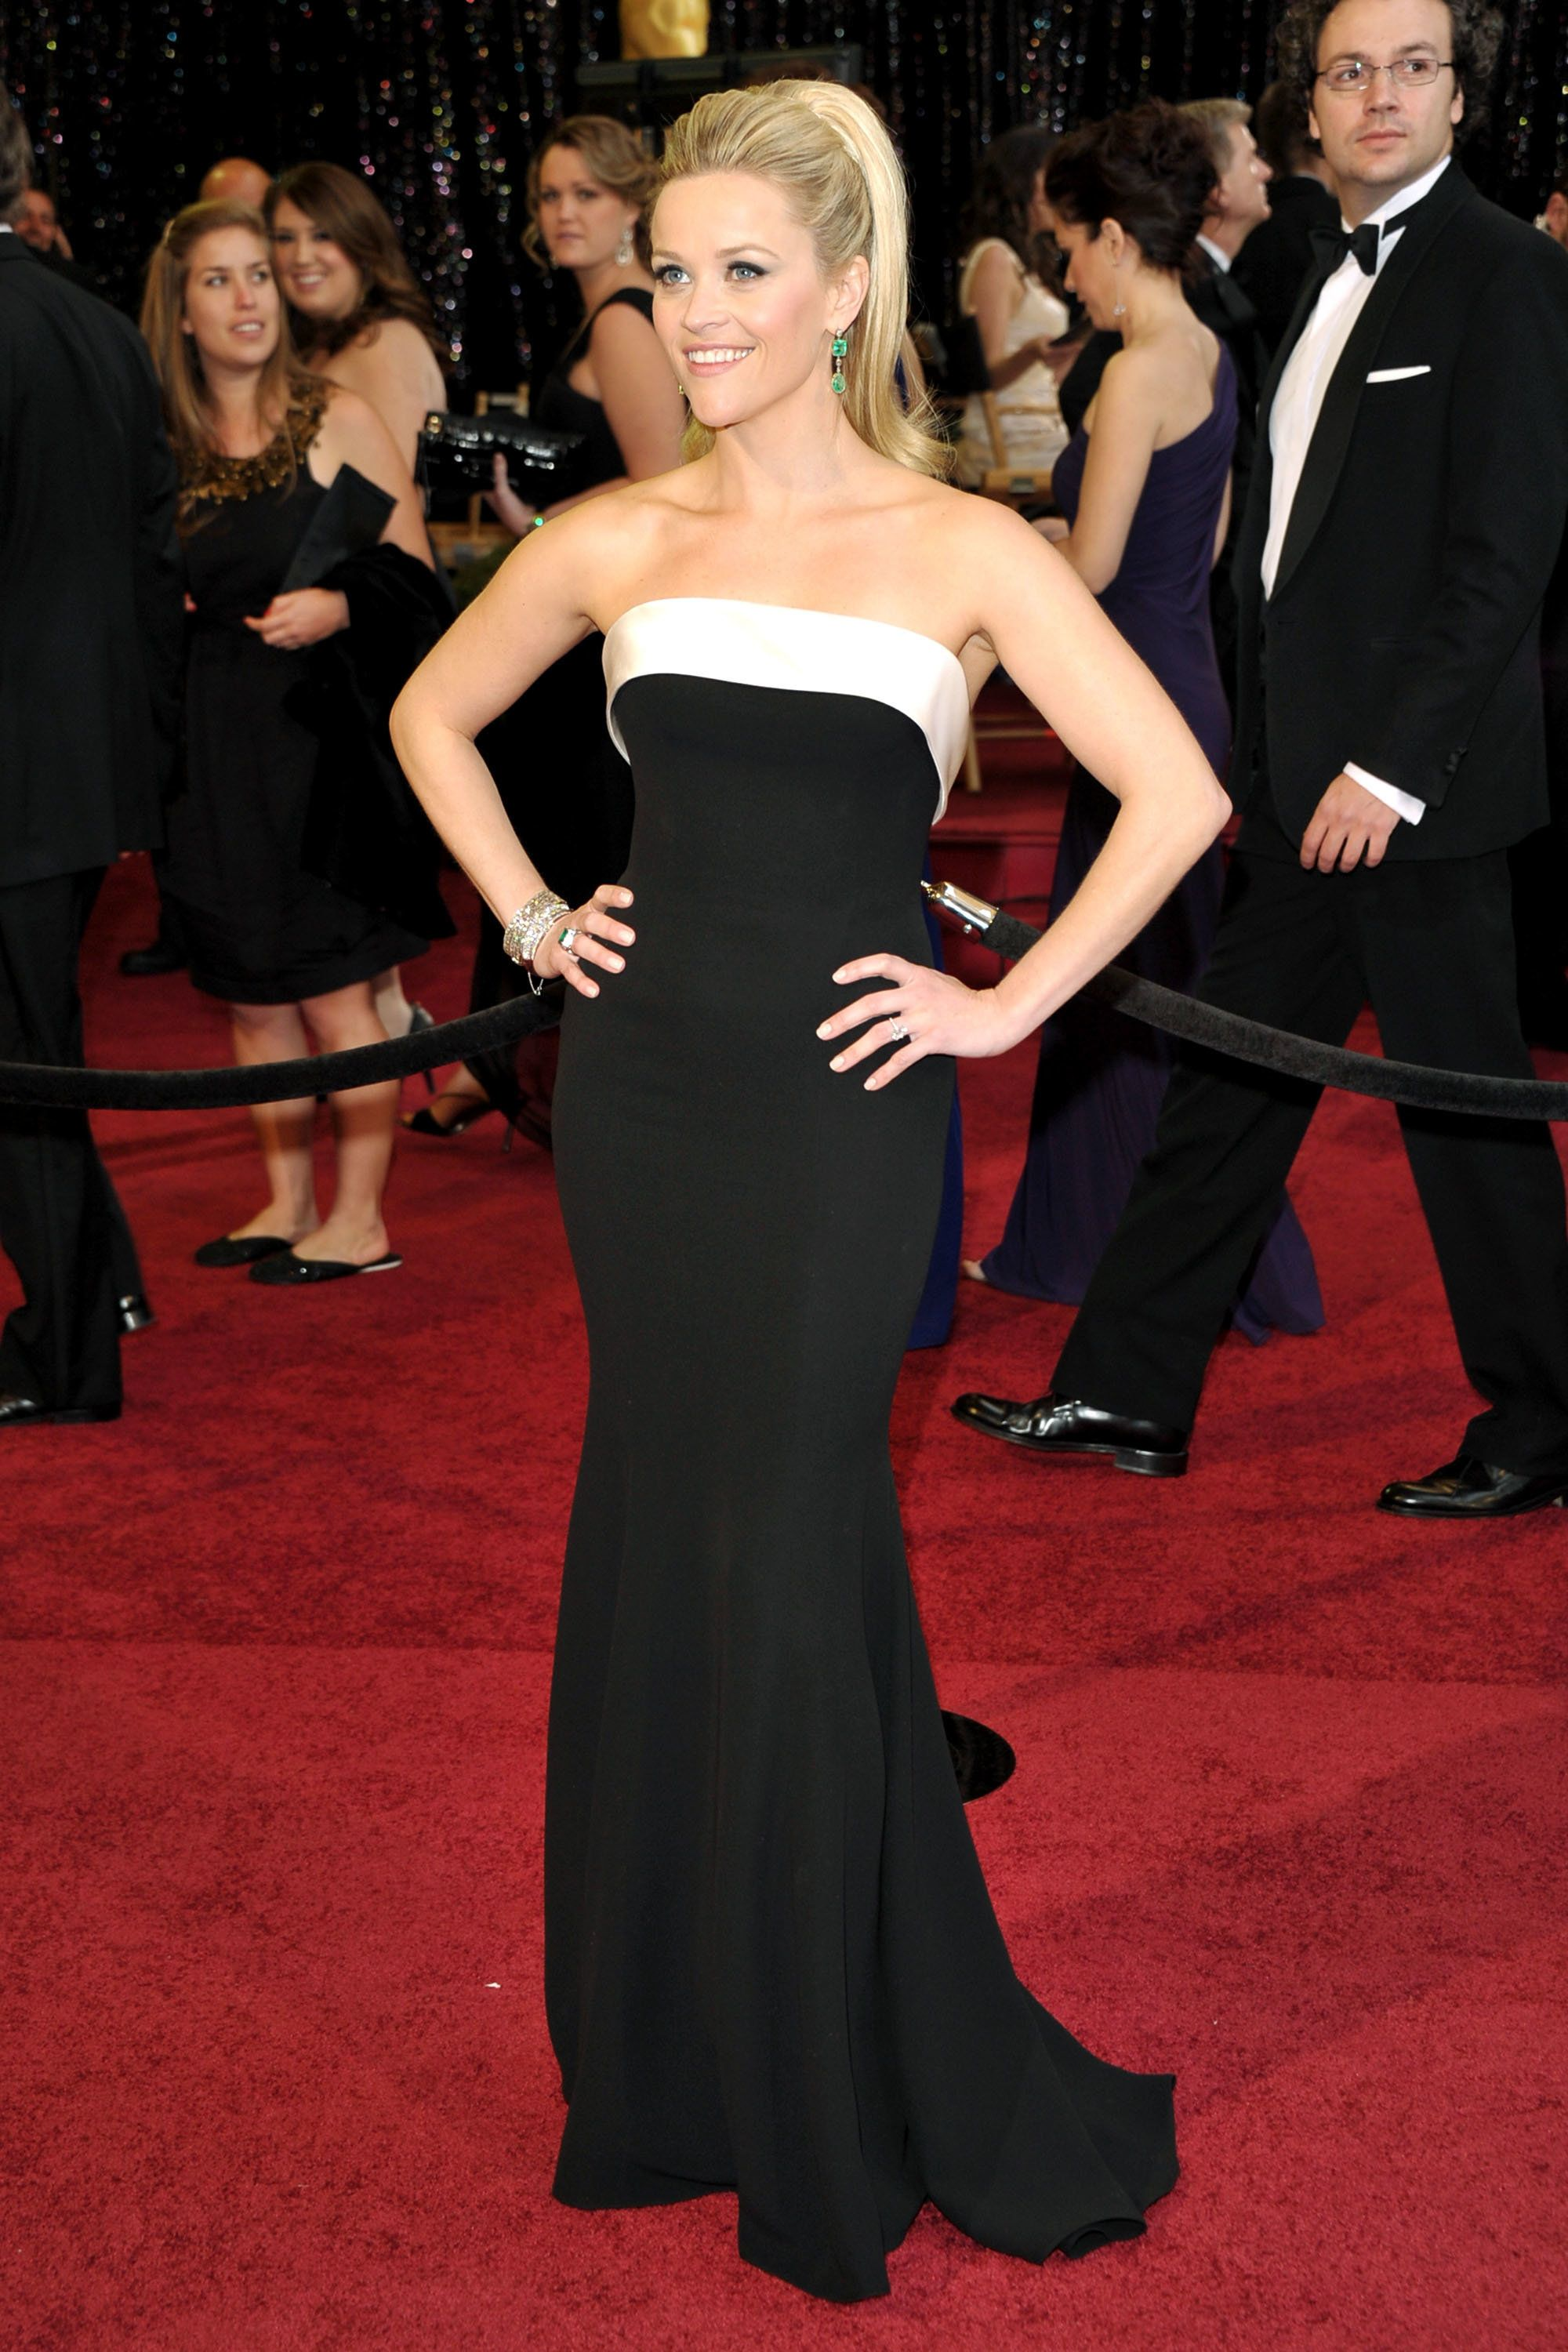 At the 2011 Oscars.